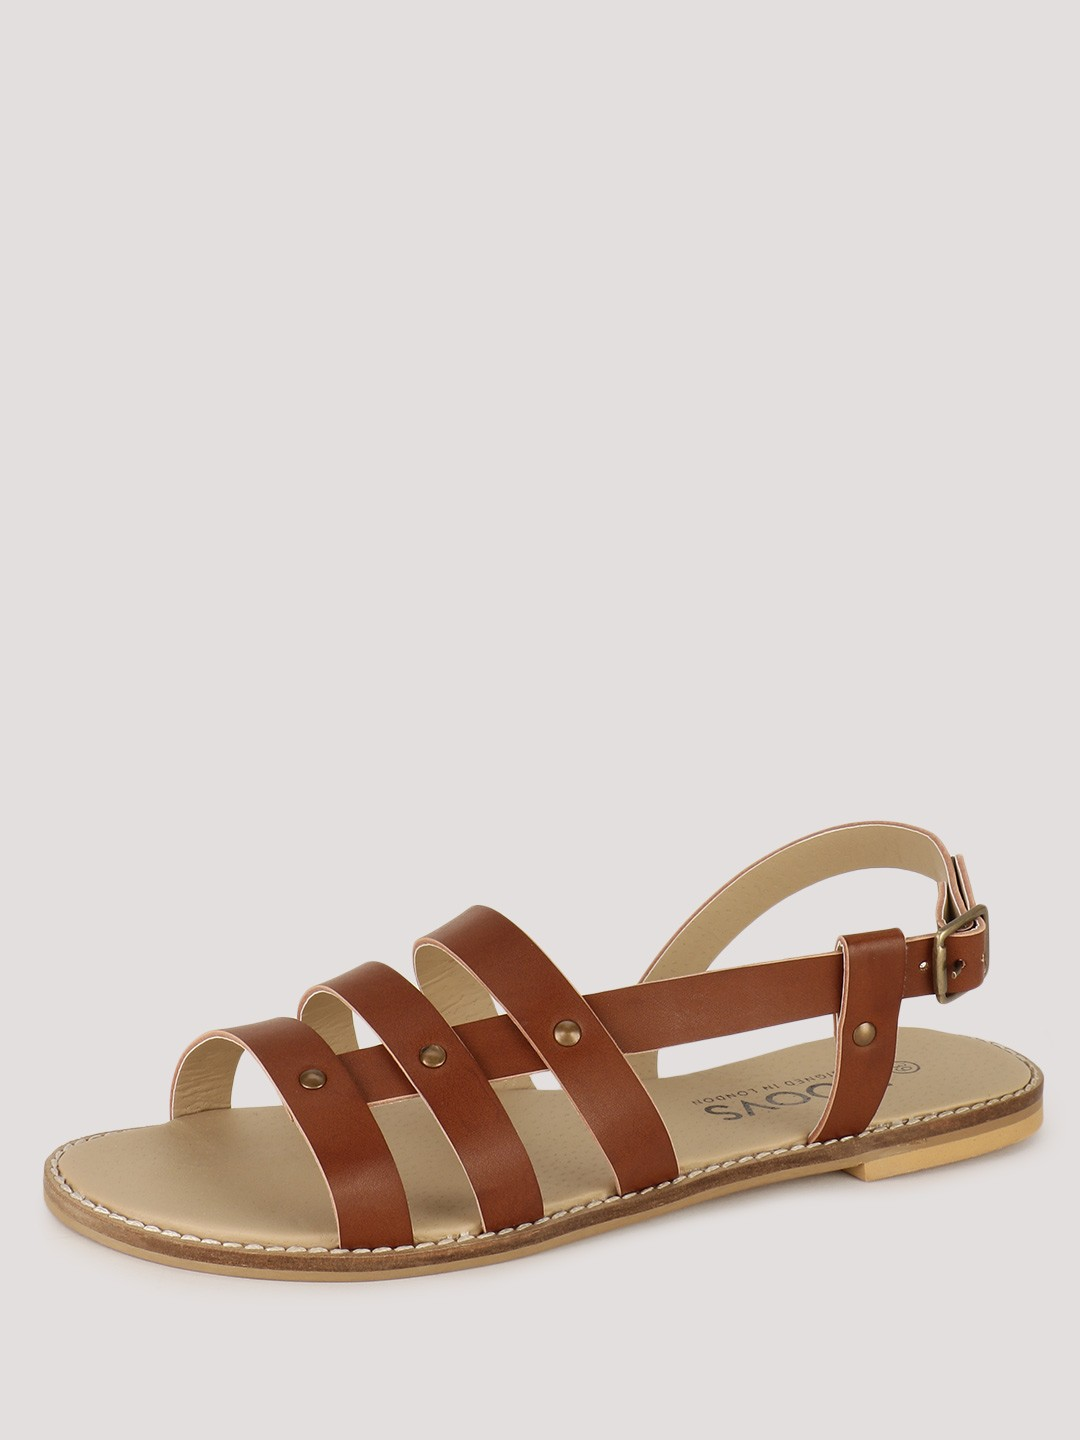 Cool Make Your Summers Simply Wonderful With Glorious Womenu2019s Sandals | Online Shoes Shopping India ...